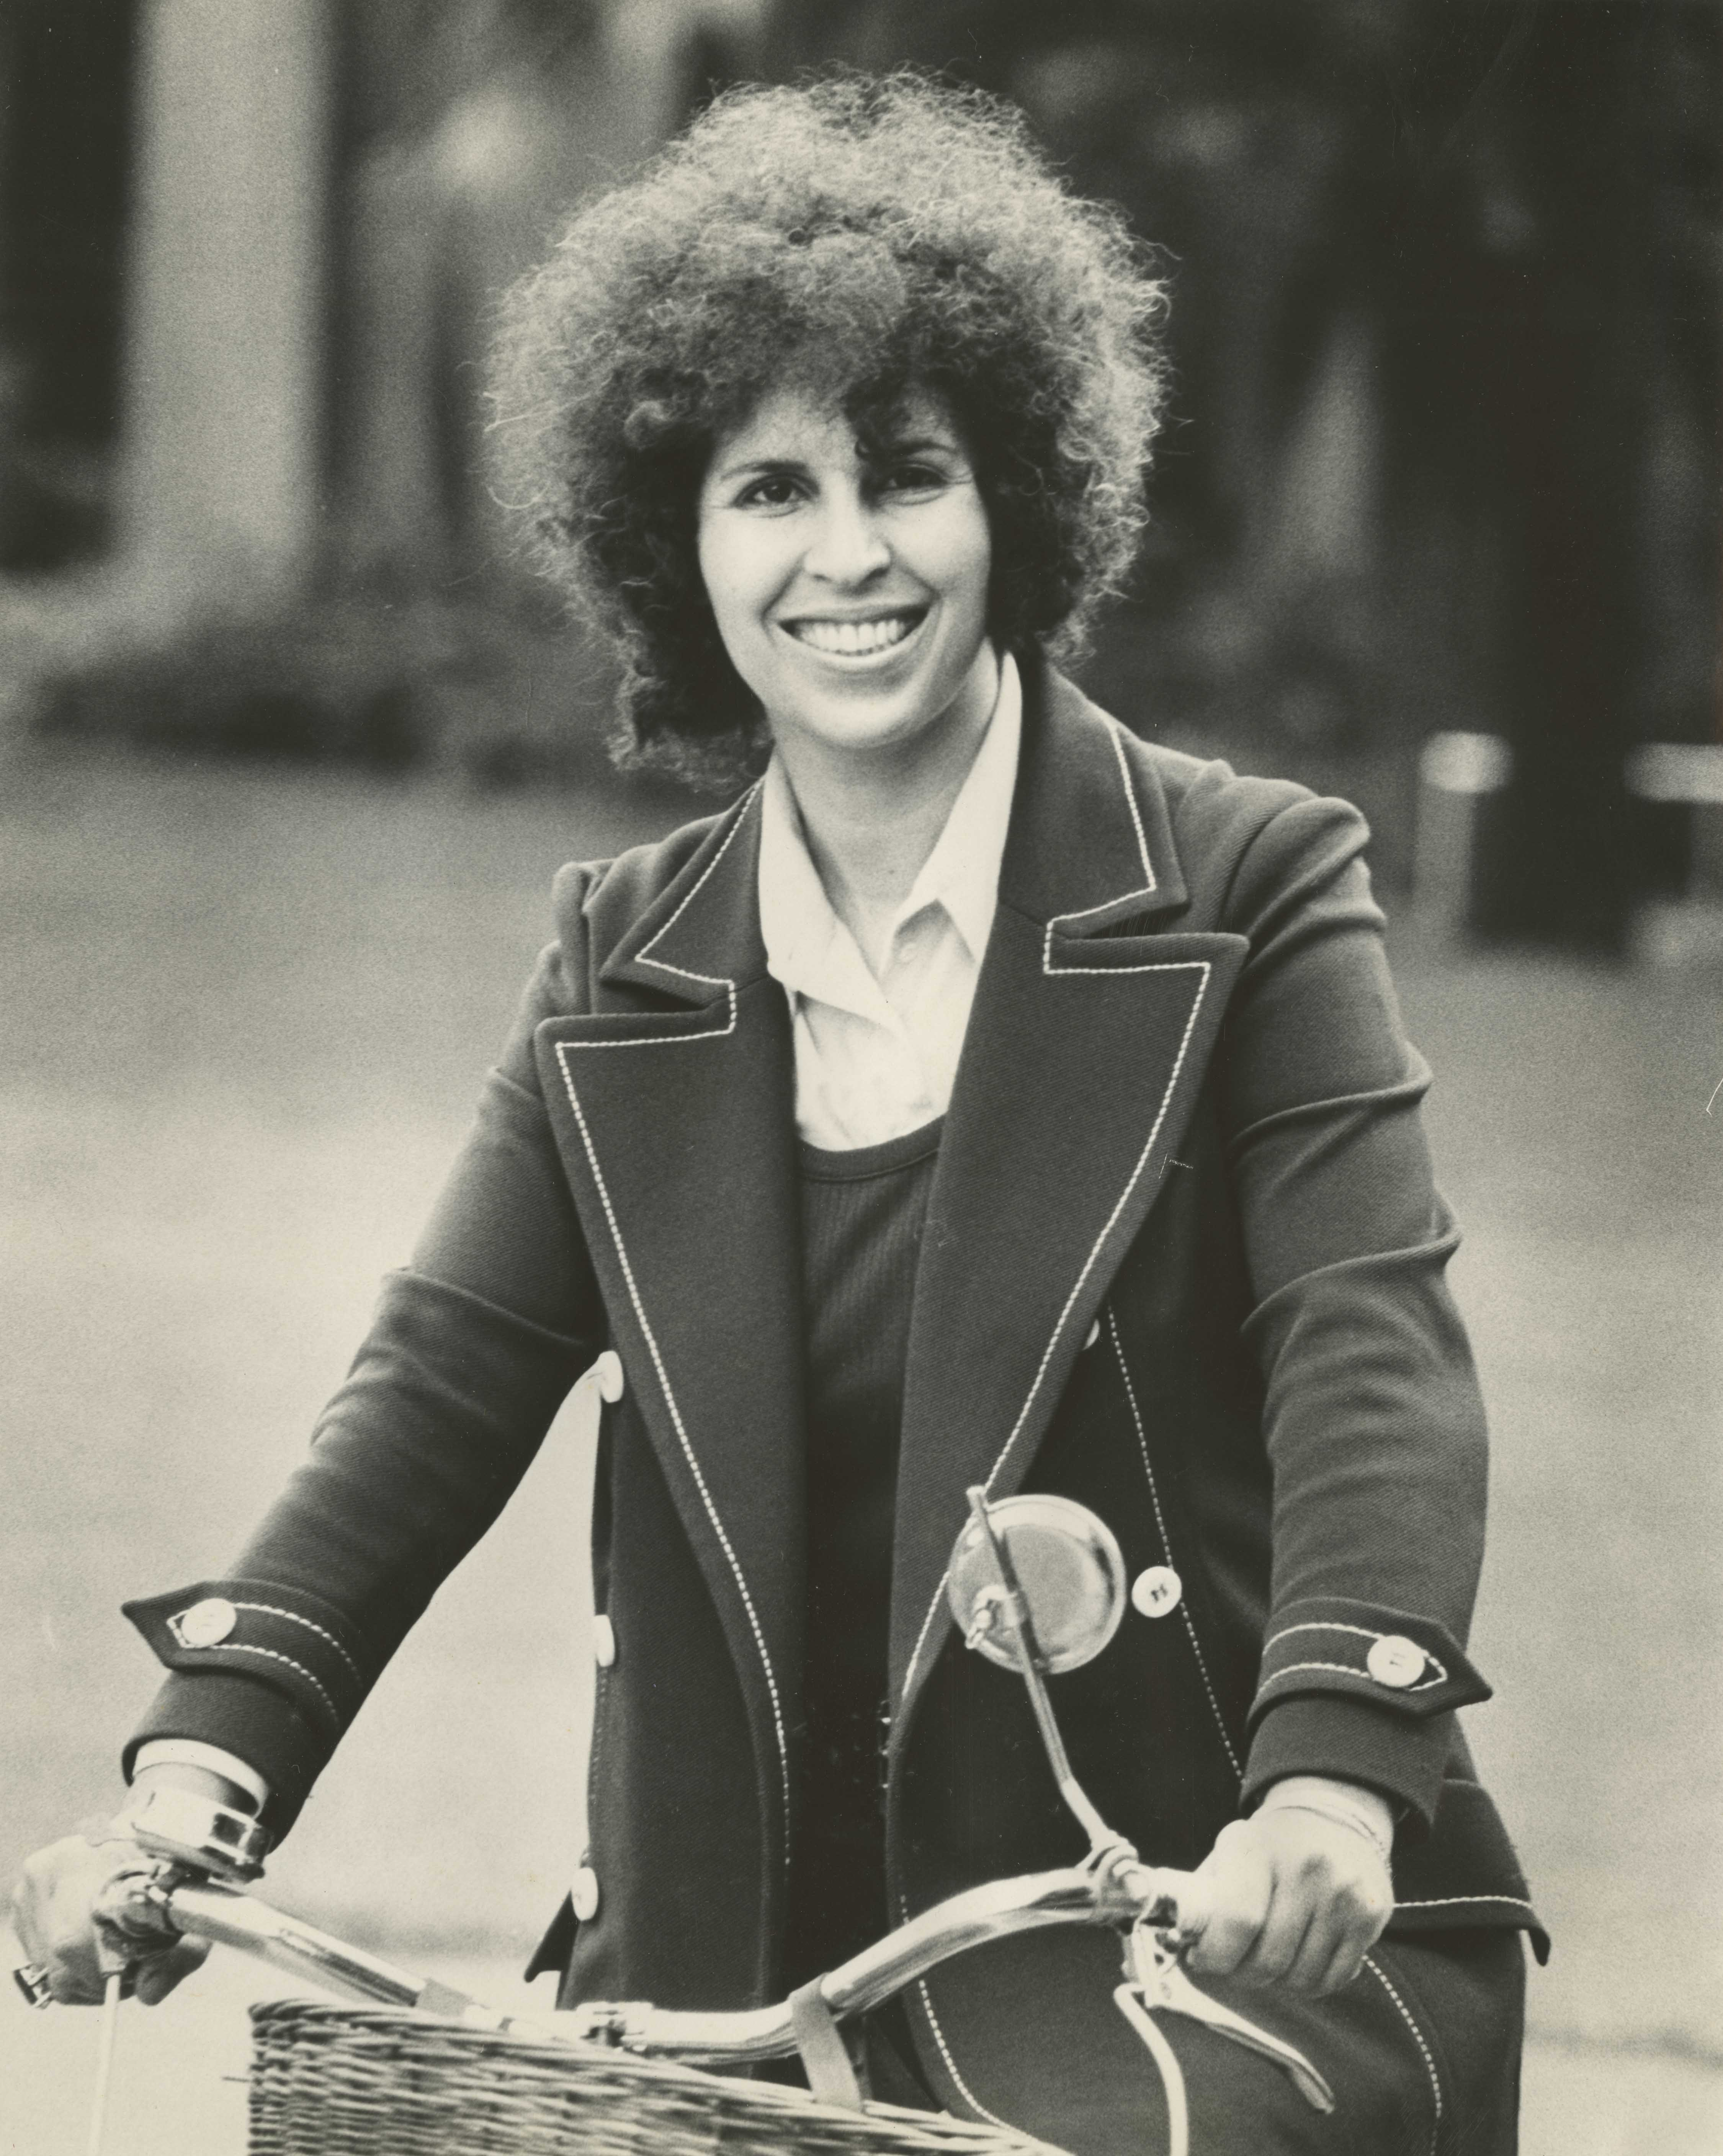 Photo of Dr. Edna Saffy, 1973